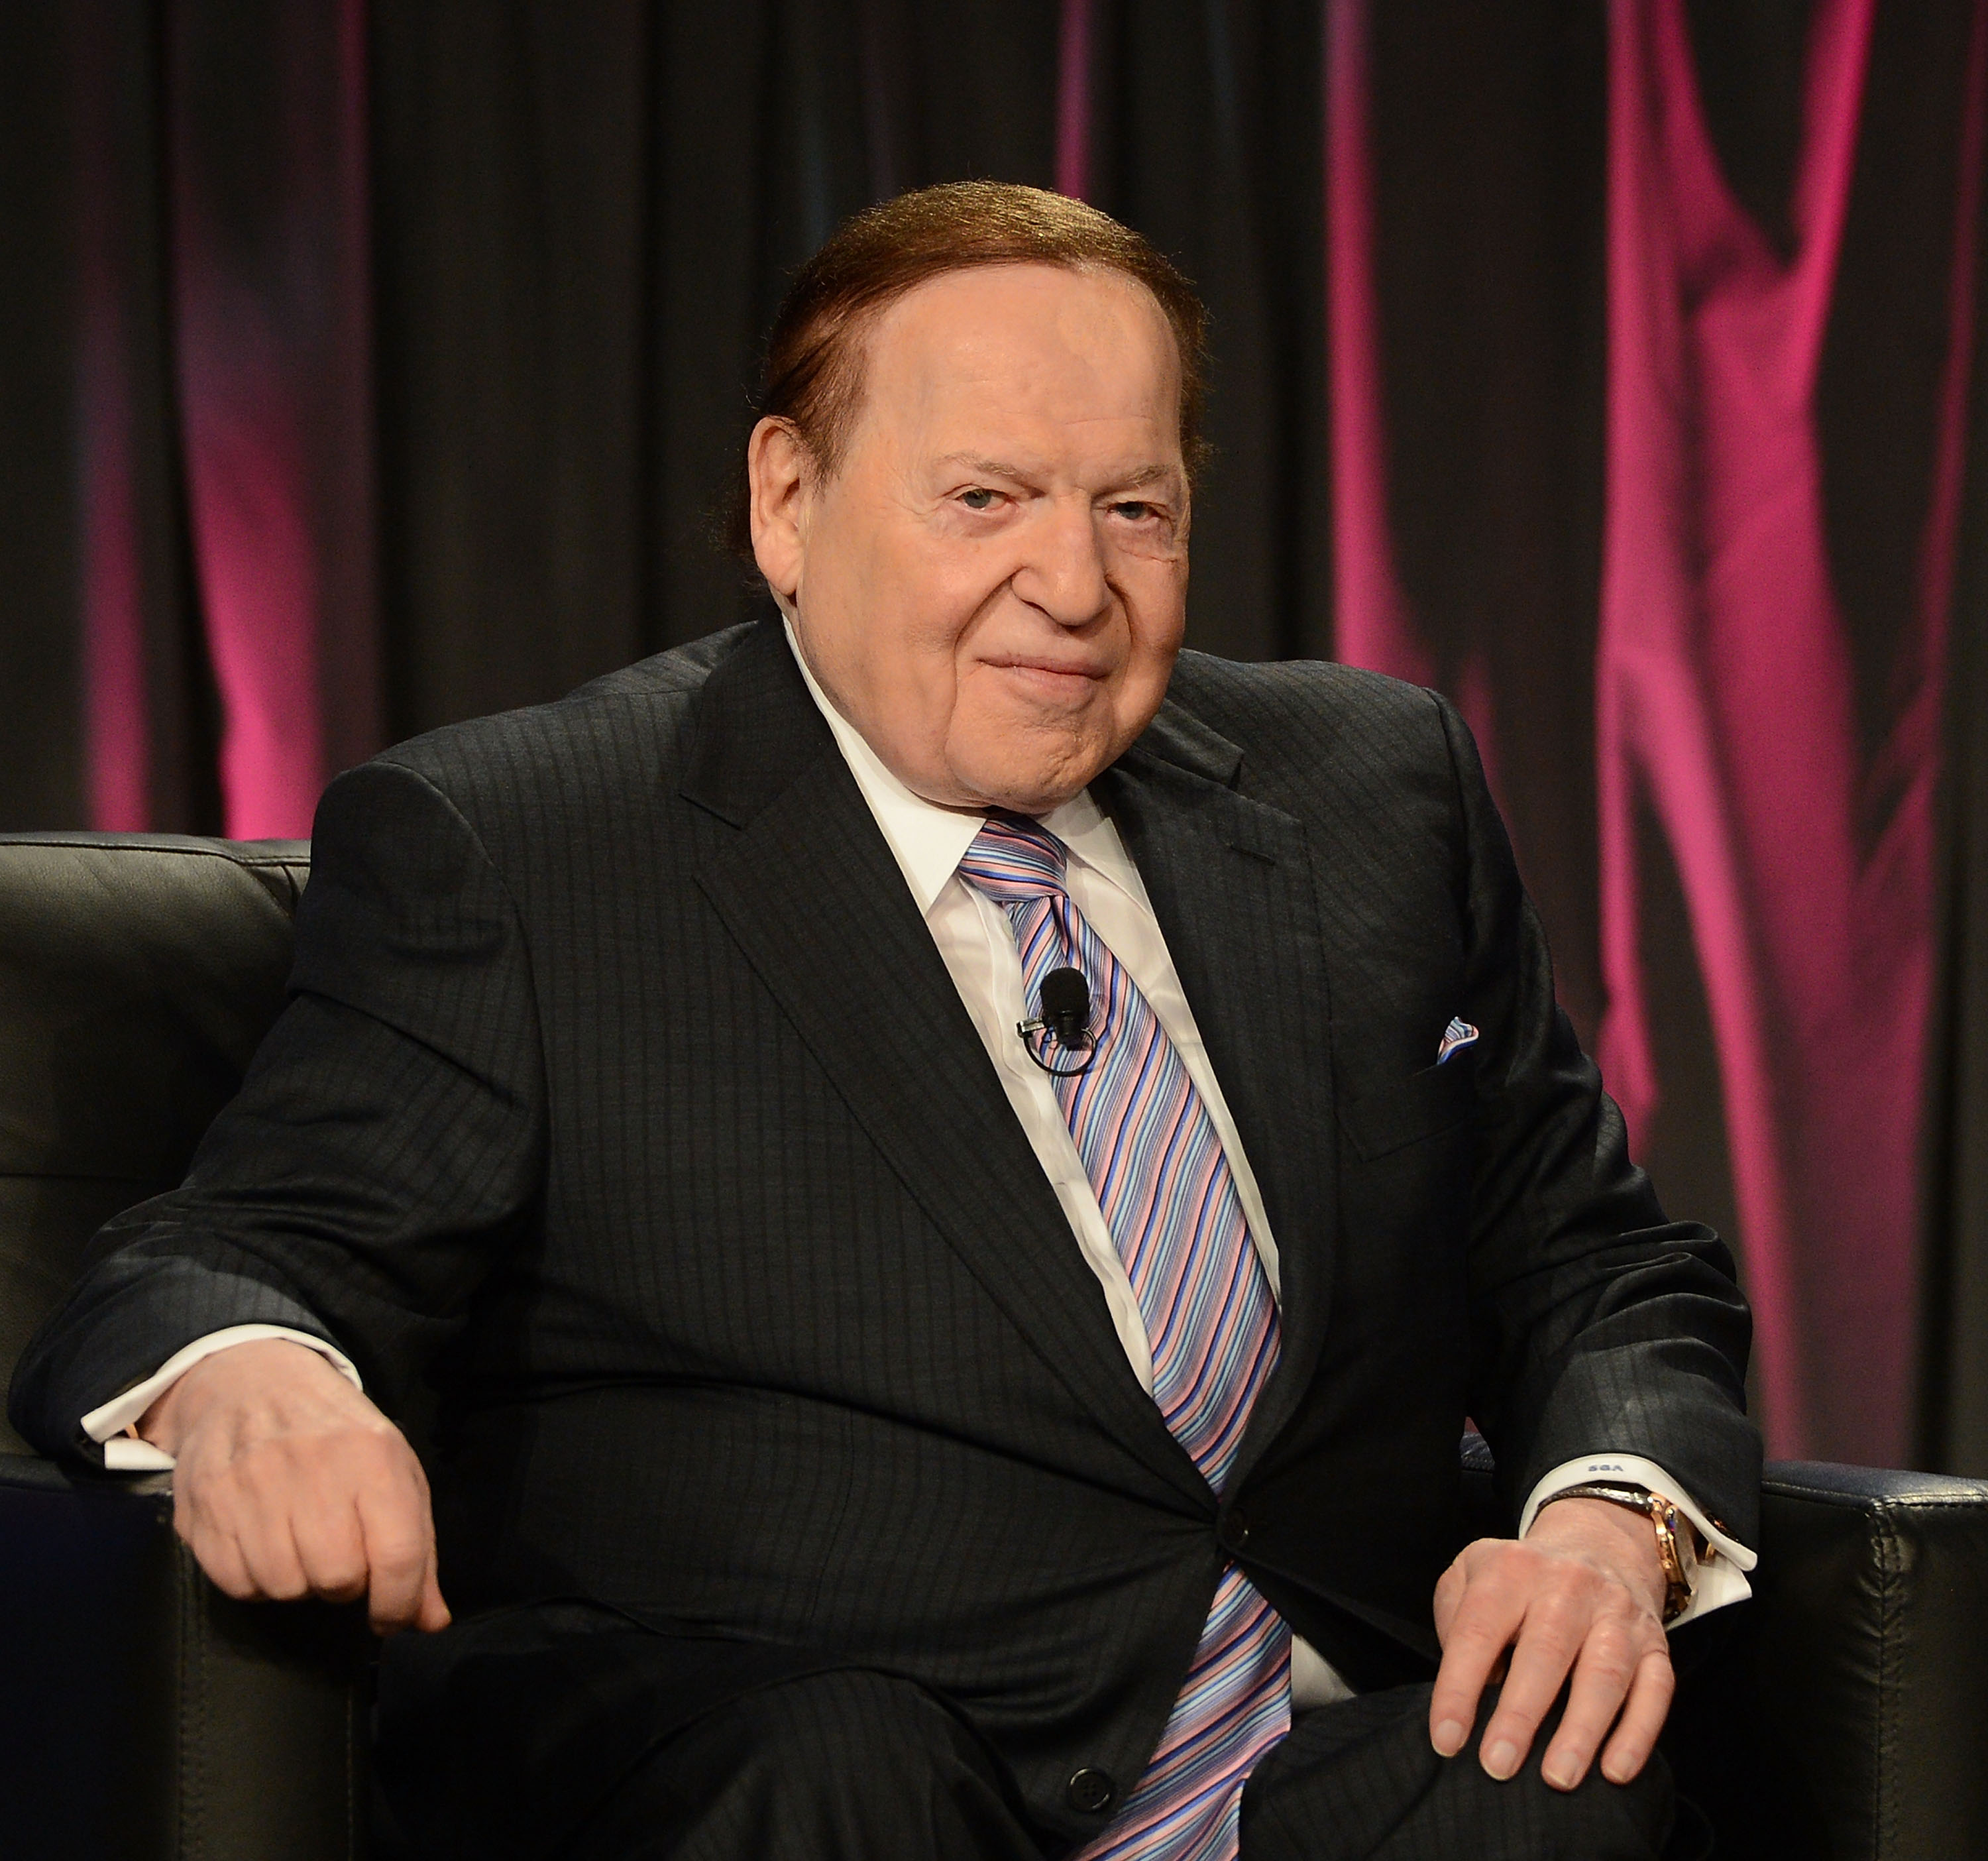 Chairman & CEO of Las Vegas Sands Corp., Sheldon Adelson speaks at the Exclusive Seminar: Keynote at the 14th Annual Global Gaming Expo at the Sands Expo and Convention Center on Oct. 1, 2014 in Las Vegas.